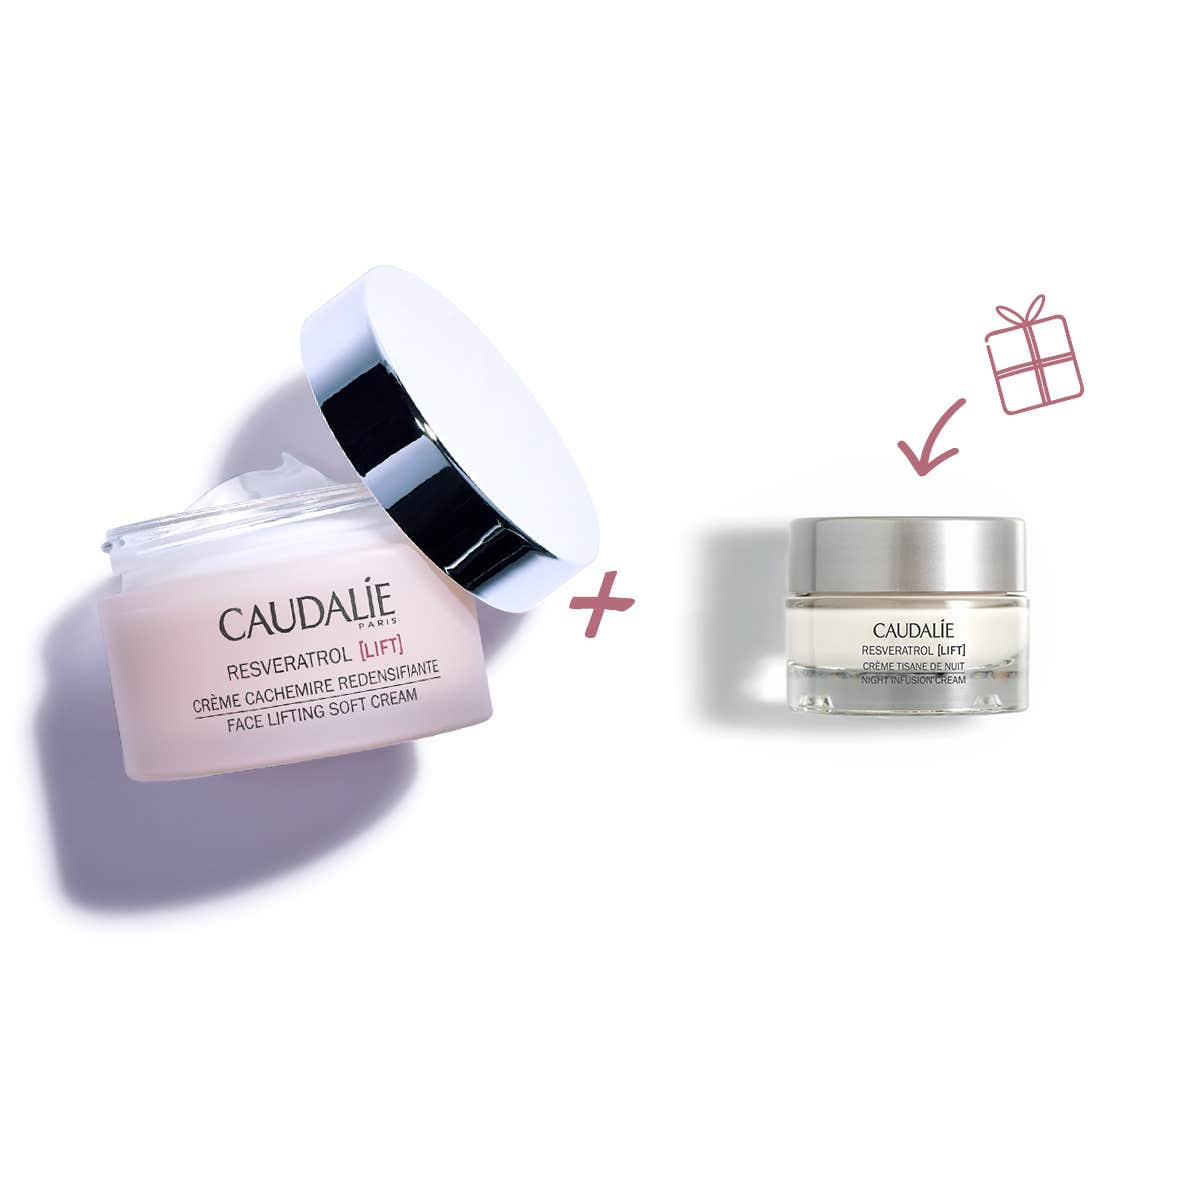 Anti-ageing day & night duo – Face lifting soft cream